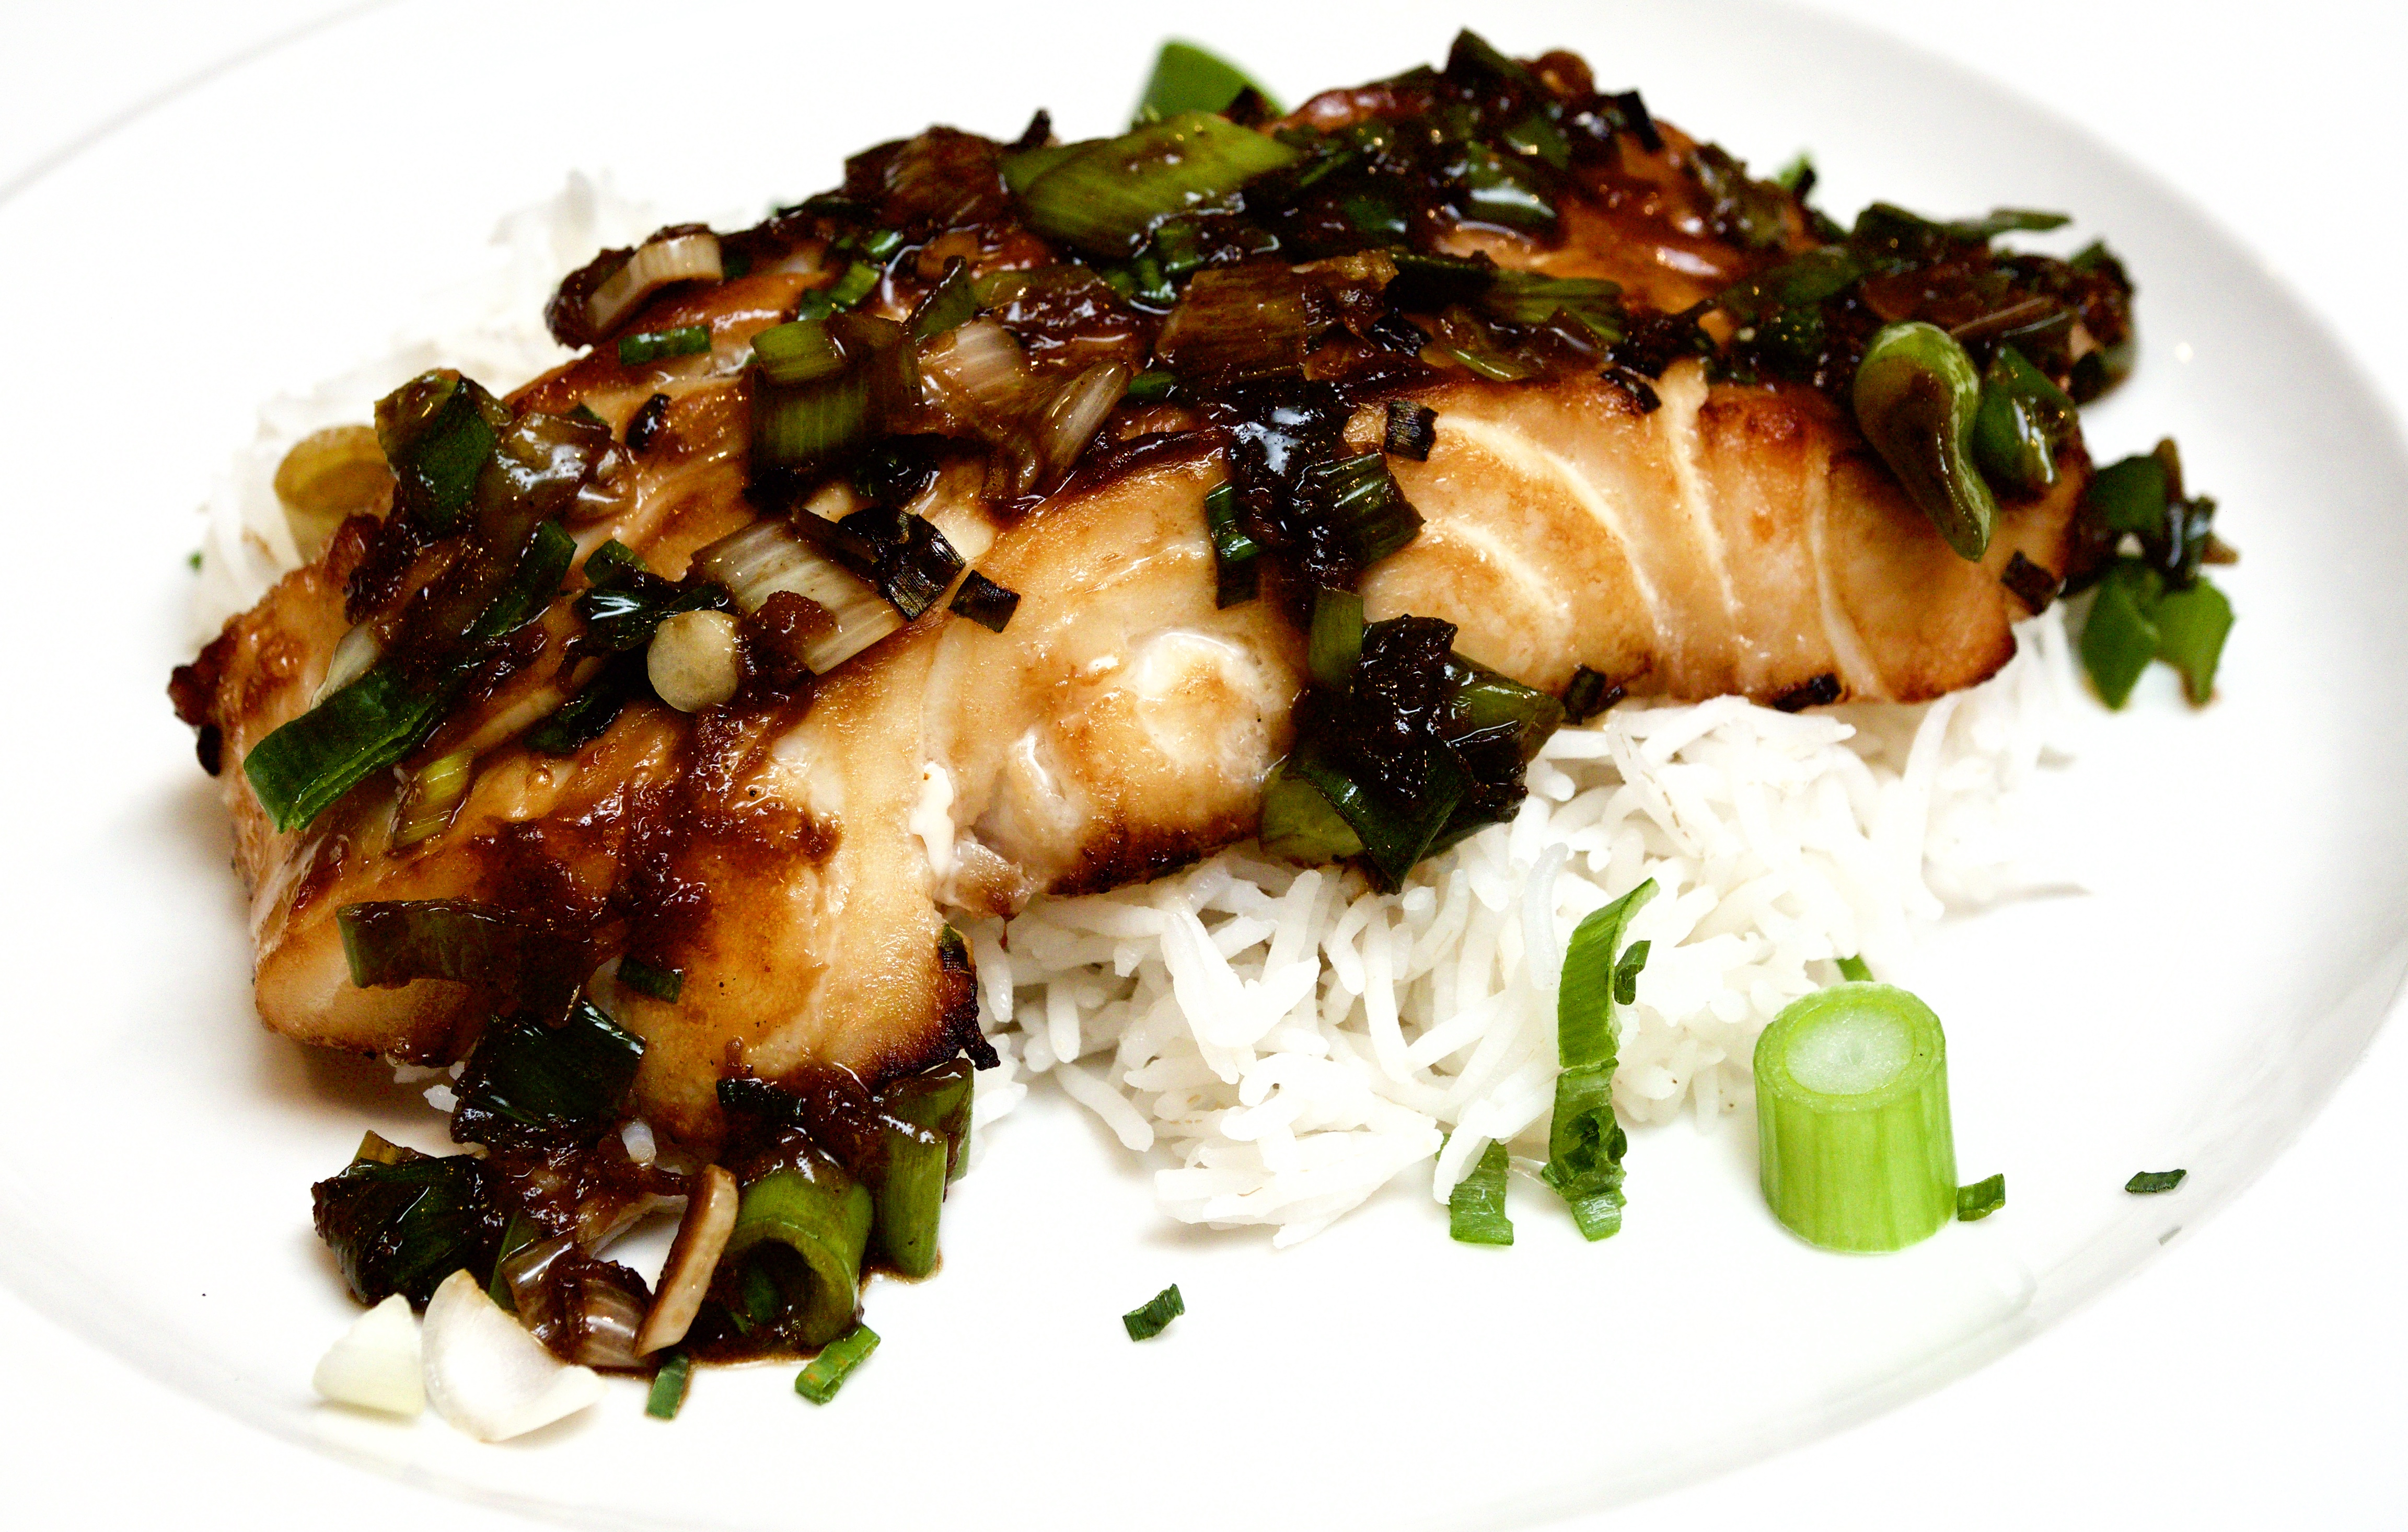 Cod with a soy and chive marinade